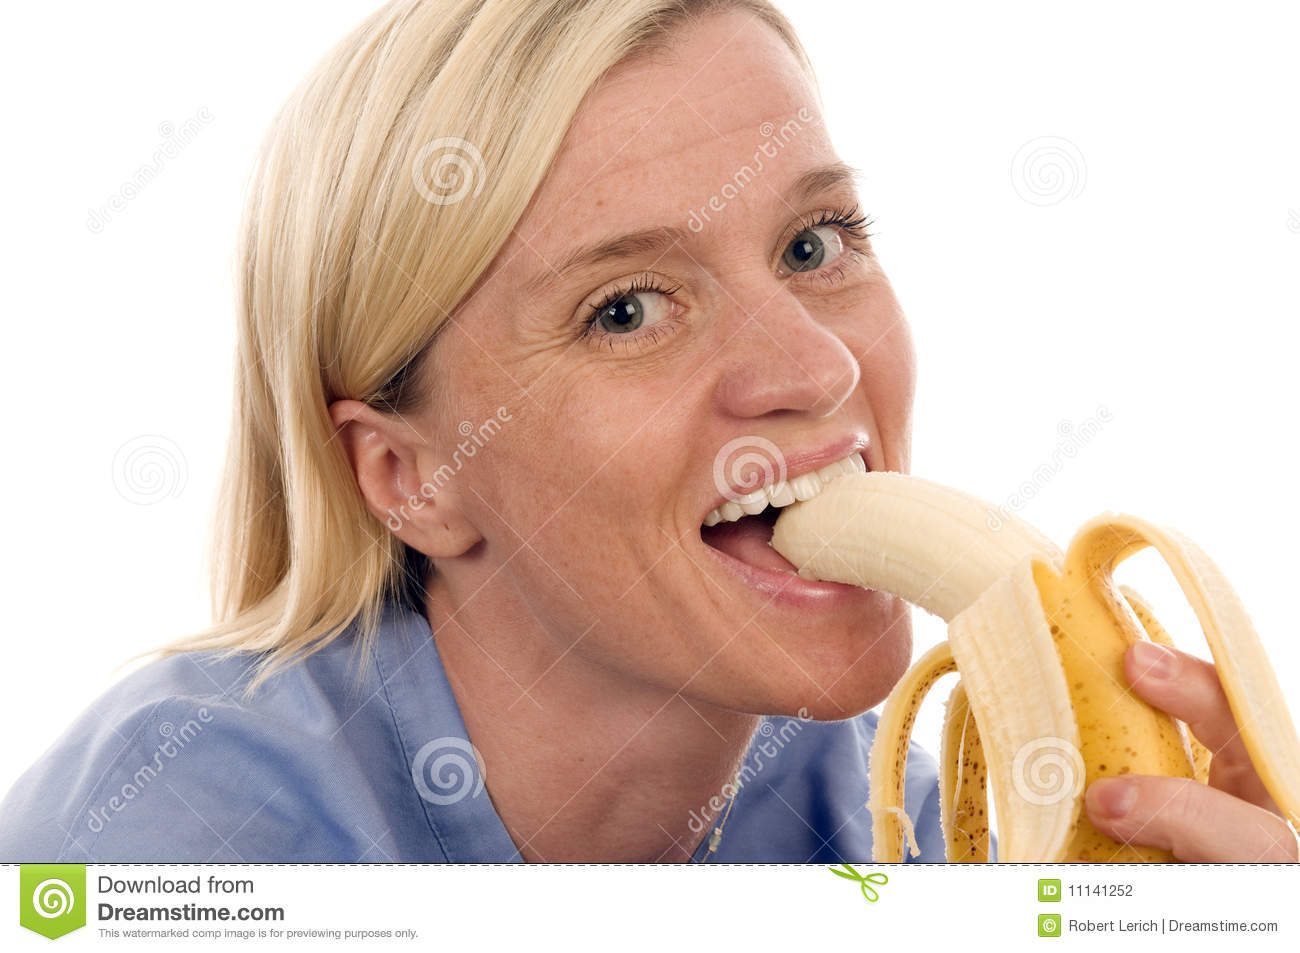 Nurse Medical Person Eating Banana Stock Photography - Image: 11141252